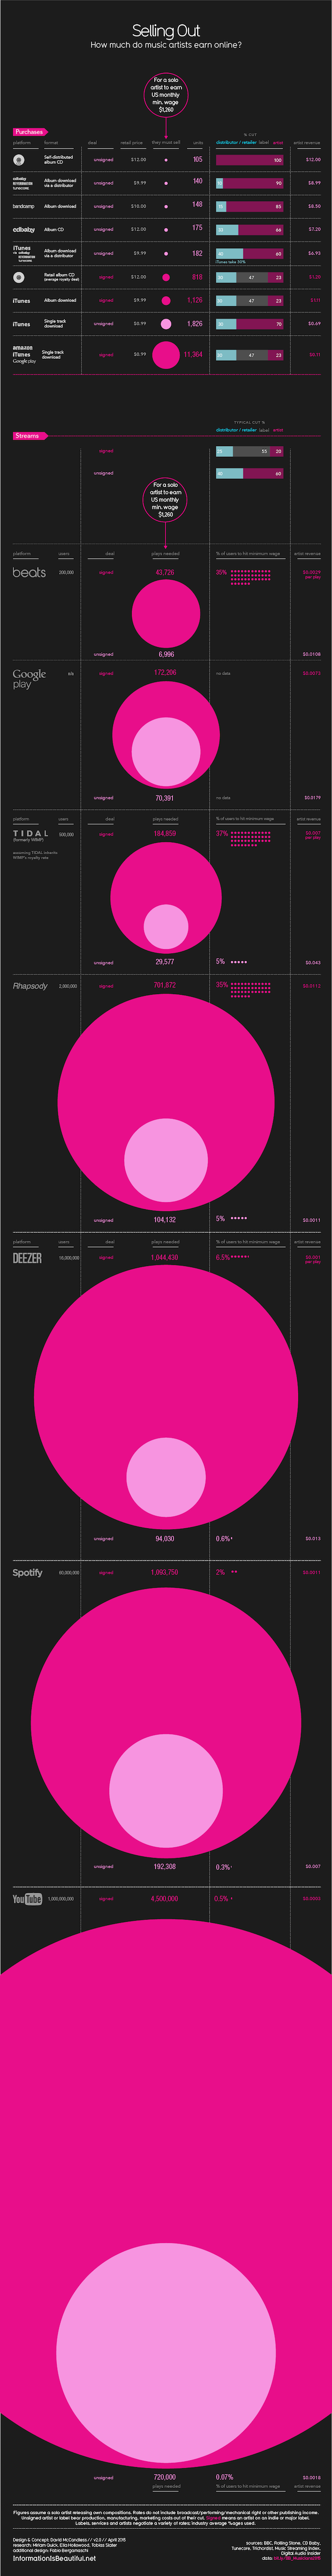 Infographic money musicians